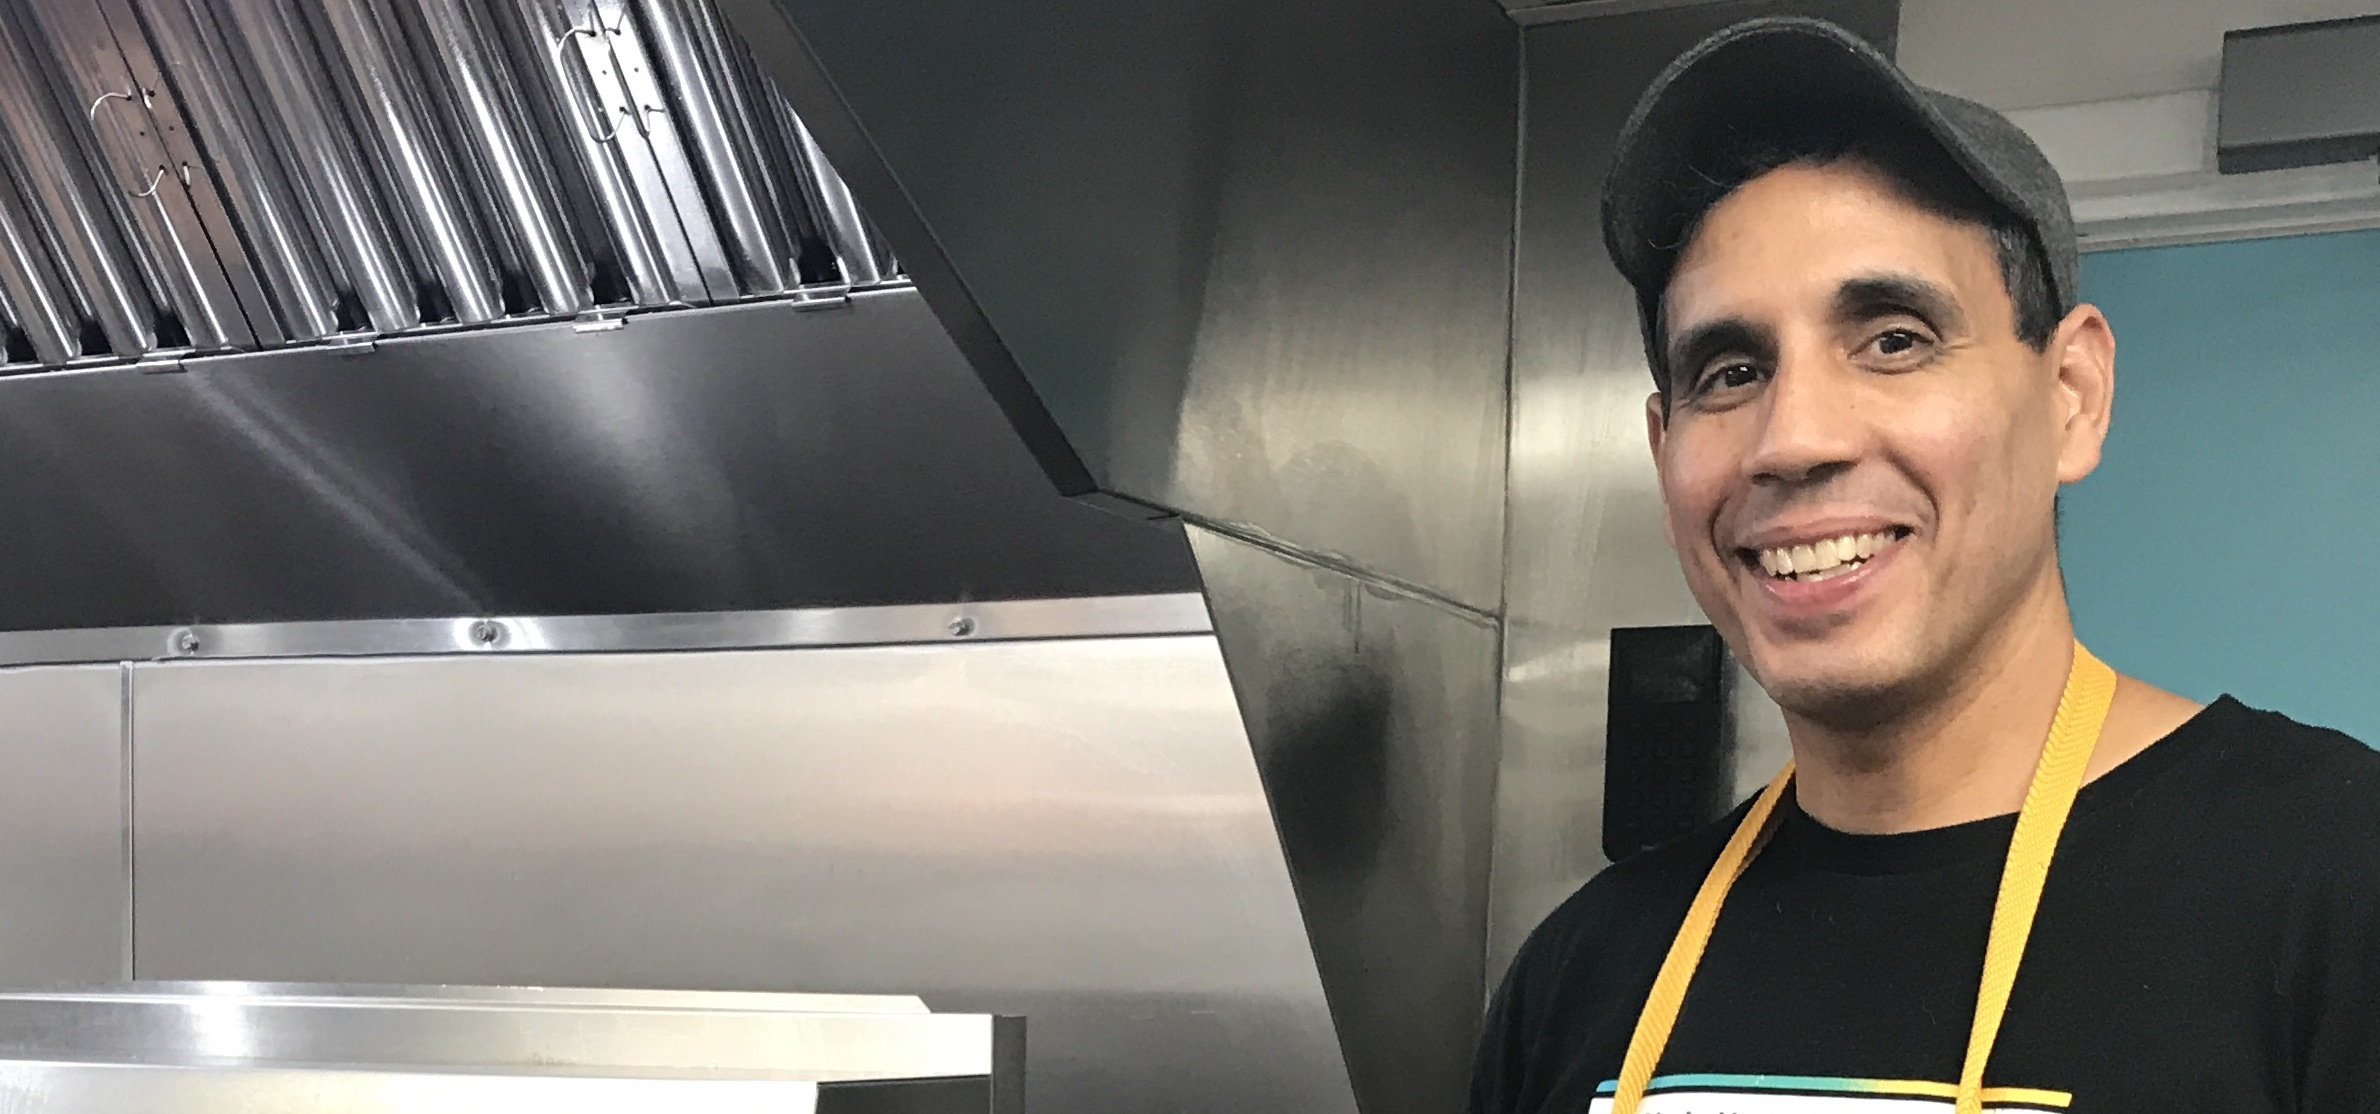 Ryan Khan, Owner/Chef | Hungry Sparrow